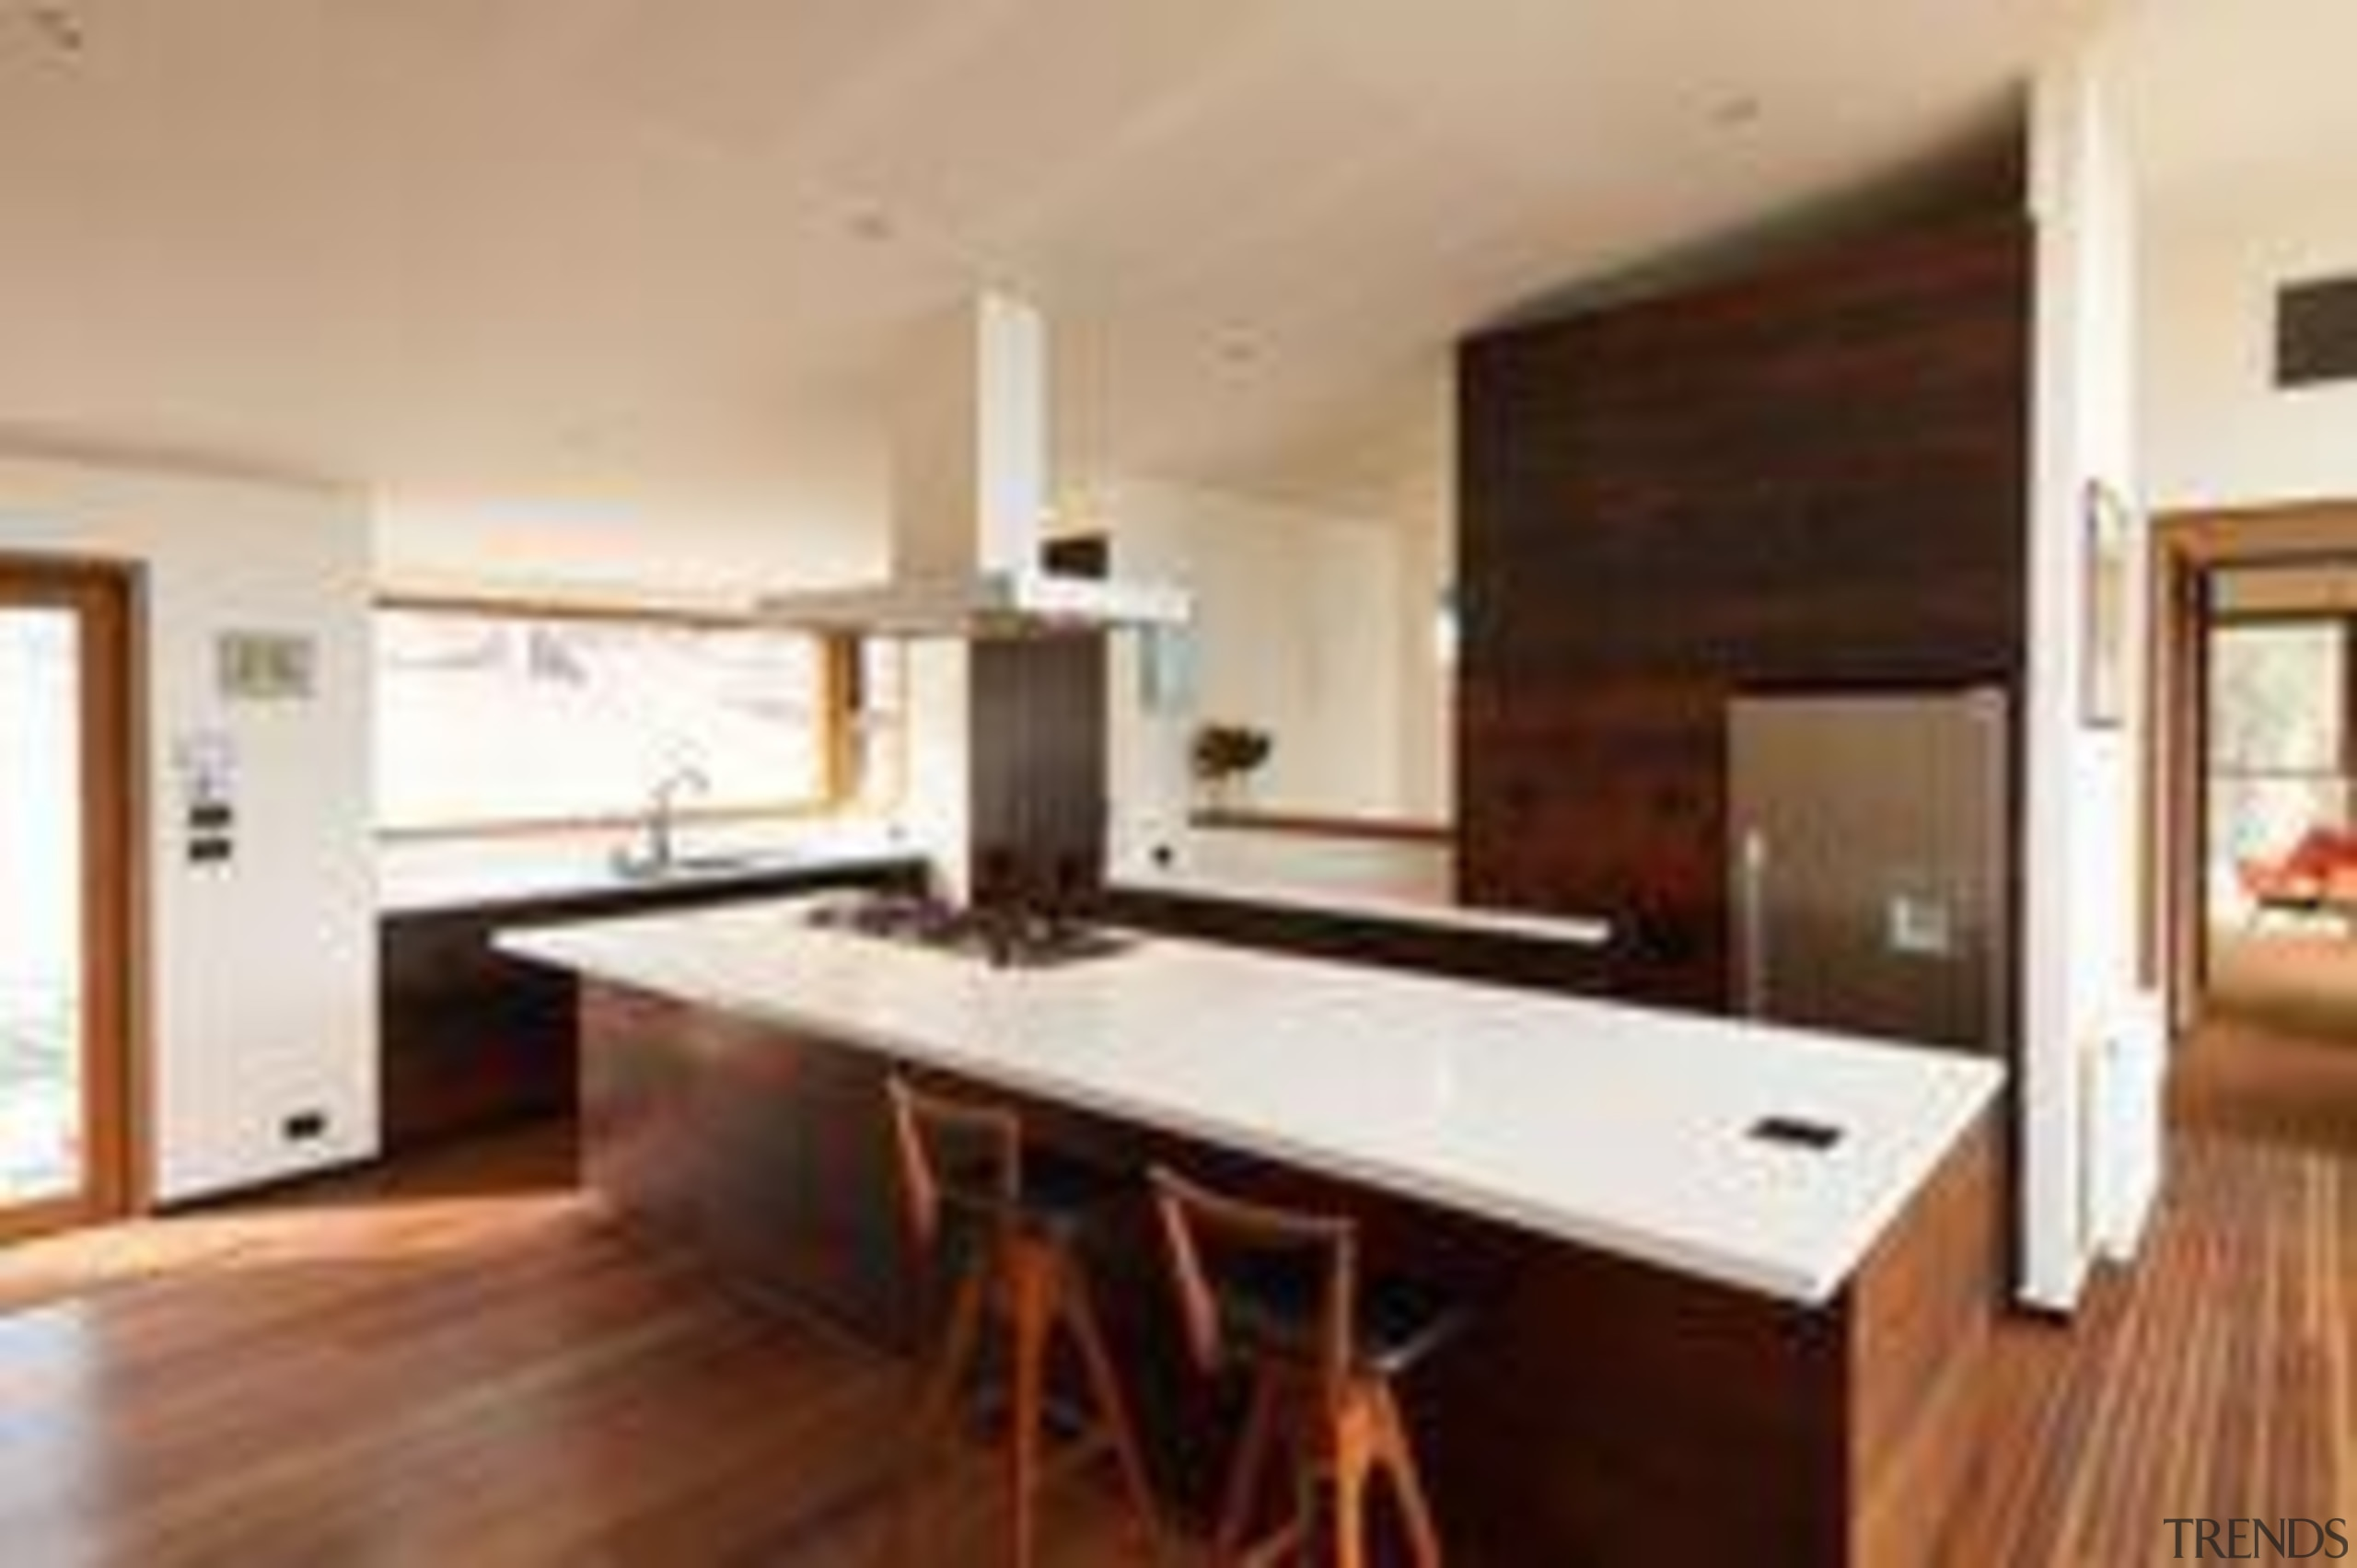 Multiform Melbourne for Lauren Burns - Snow™ - floor, flooring, hardwood, interior design, kitchen, property, real estate, room, wood, wood flooring, brown, white